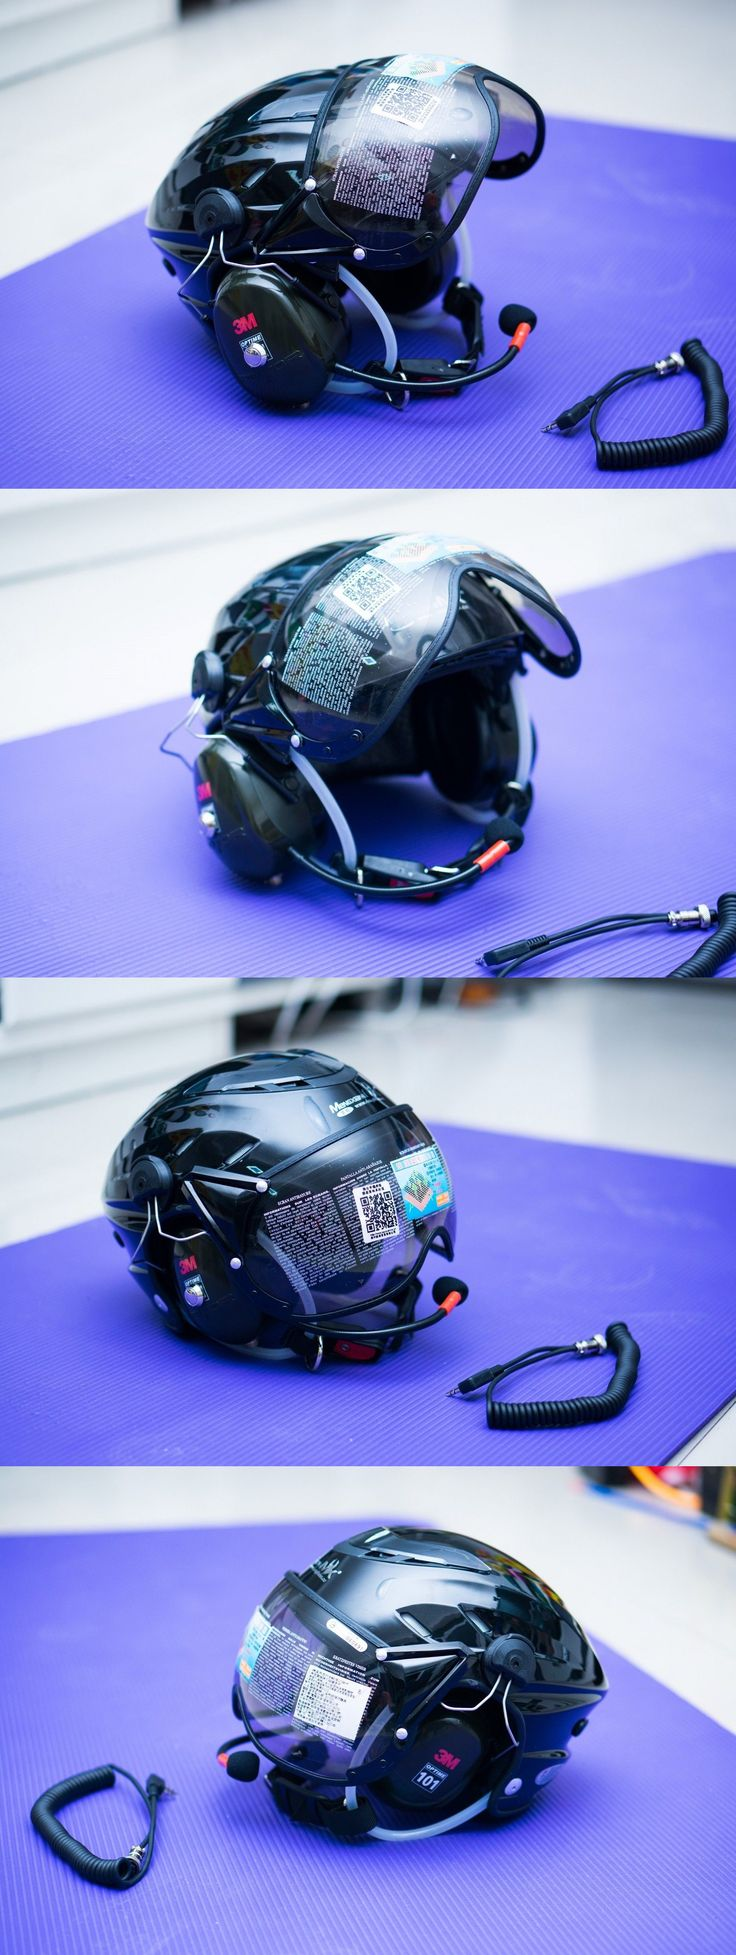 Hang Gliding and Paragliding 91561: Mx-02 Ppg Helmet Visor Powered Paragliding Paramotor Headset Gopro Base Black BUY IT NOW ONLY: $269.0